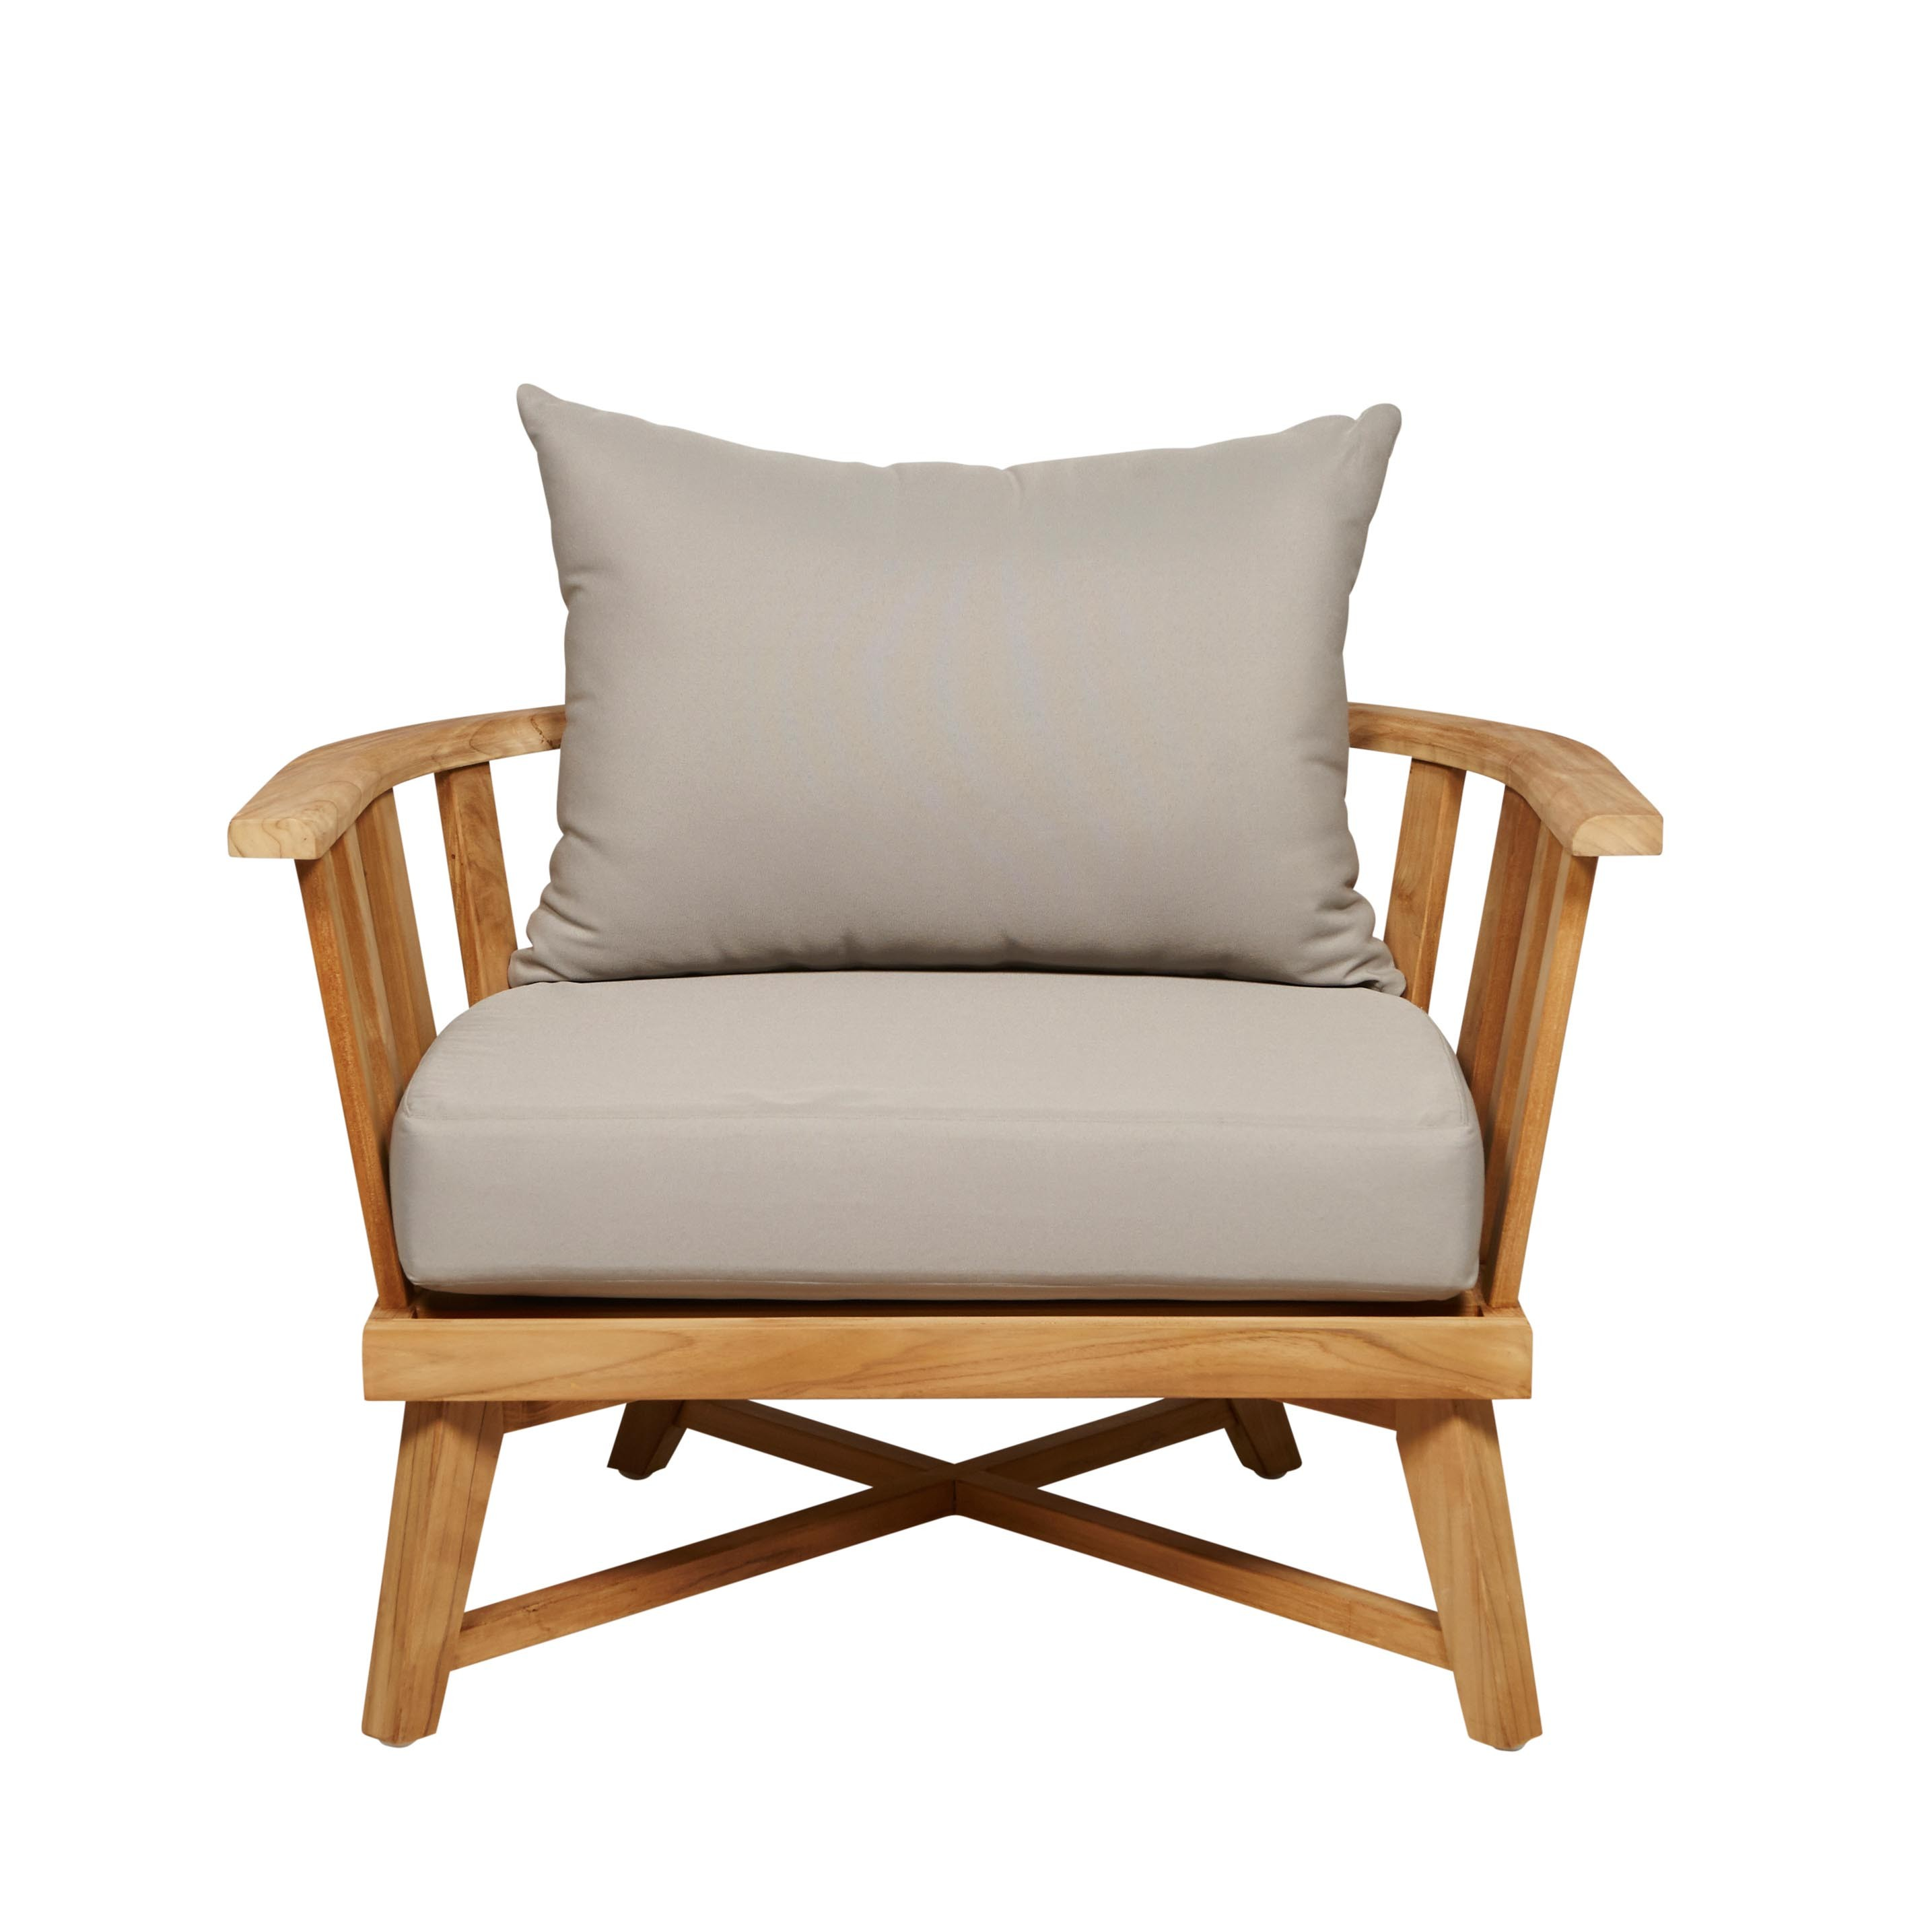 Furniture Hero-Images Occasional-Chairs sonoma-slat-04